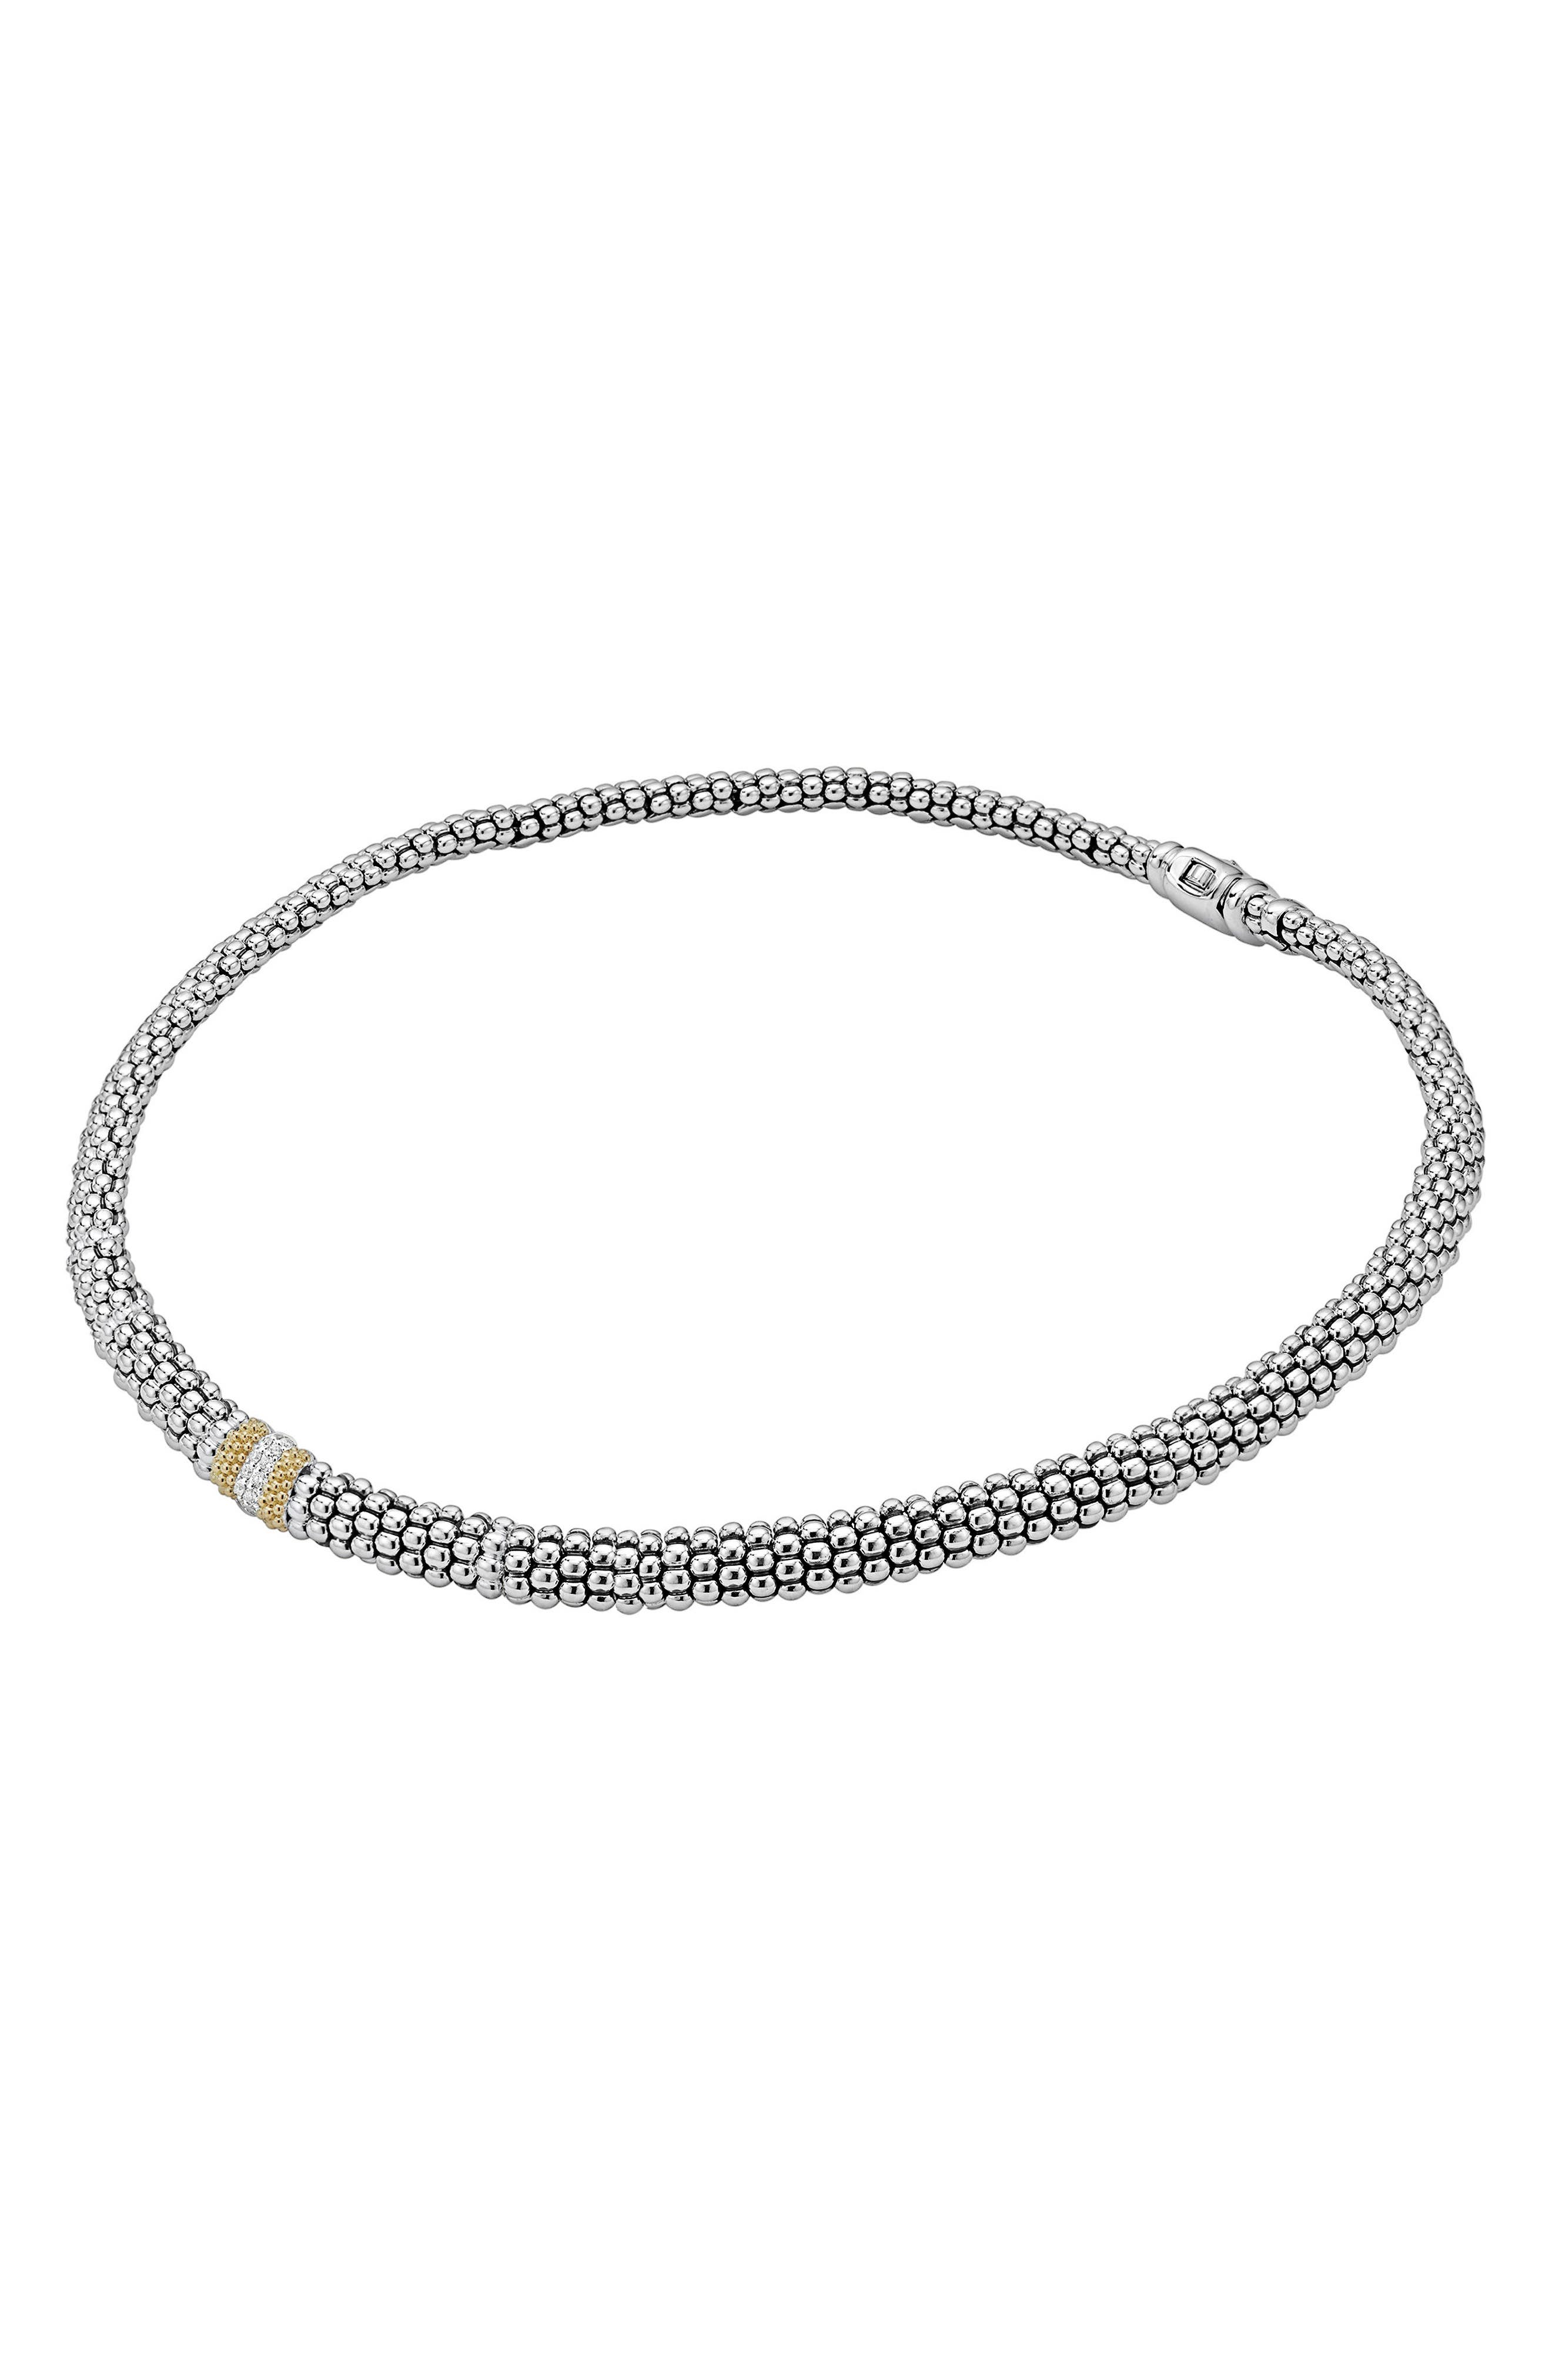 Diamond Lux Station Collar Necklace,                             Alternate thumbnail 4, color,                             SILVER/ DIAMOND